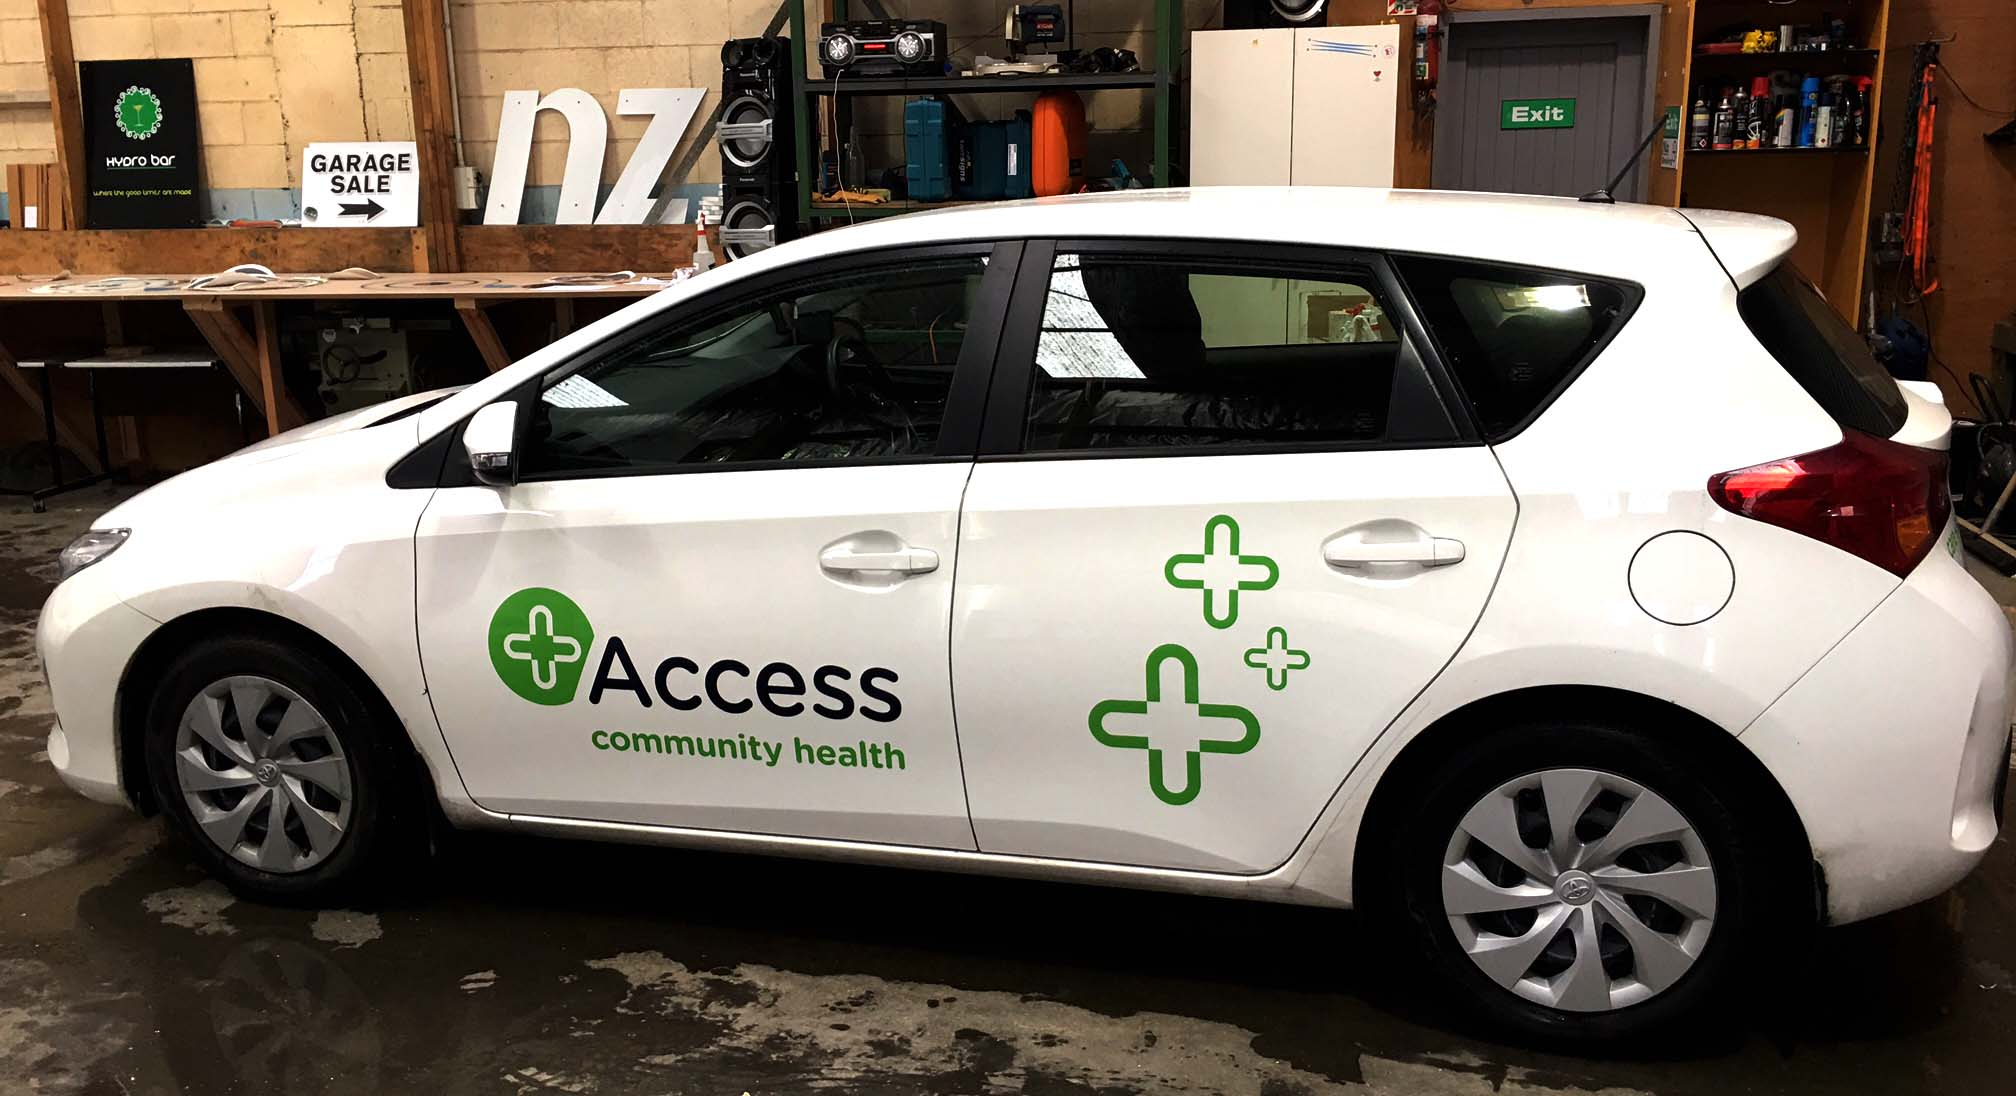 Access Health fleet car